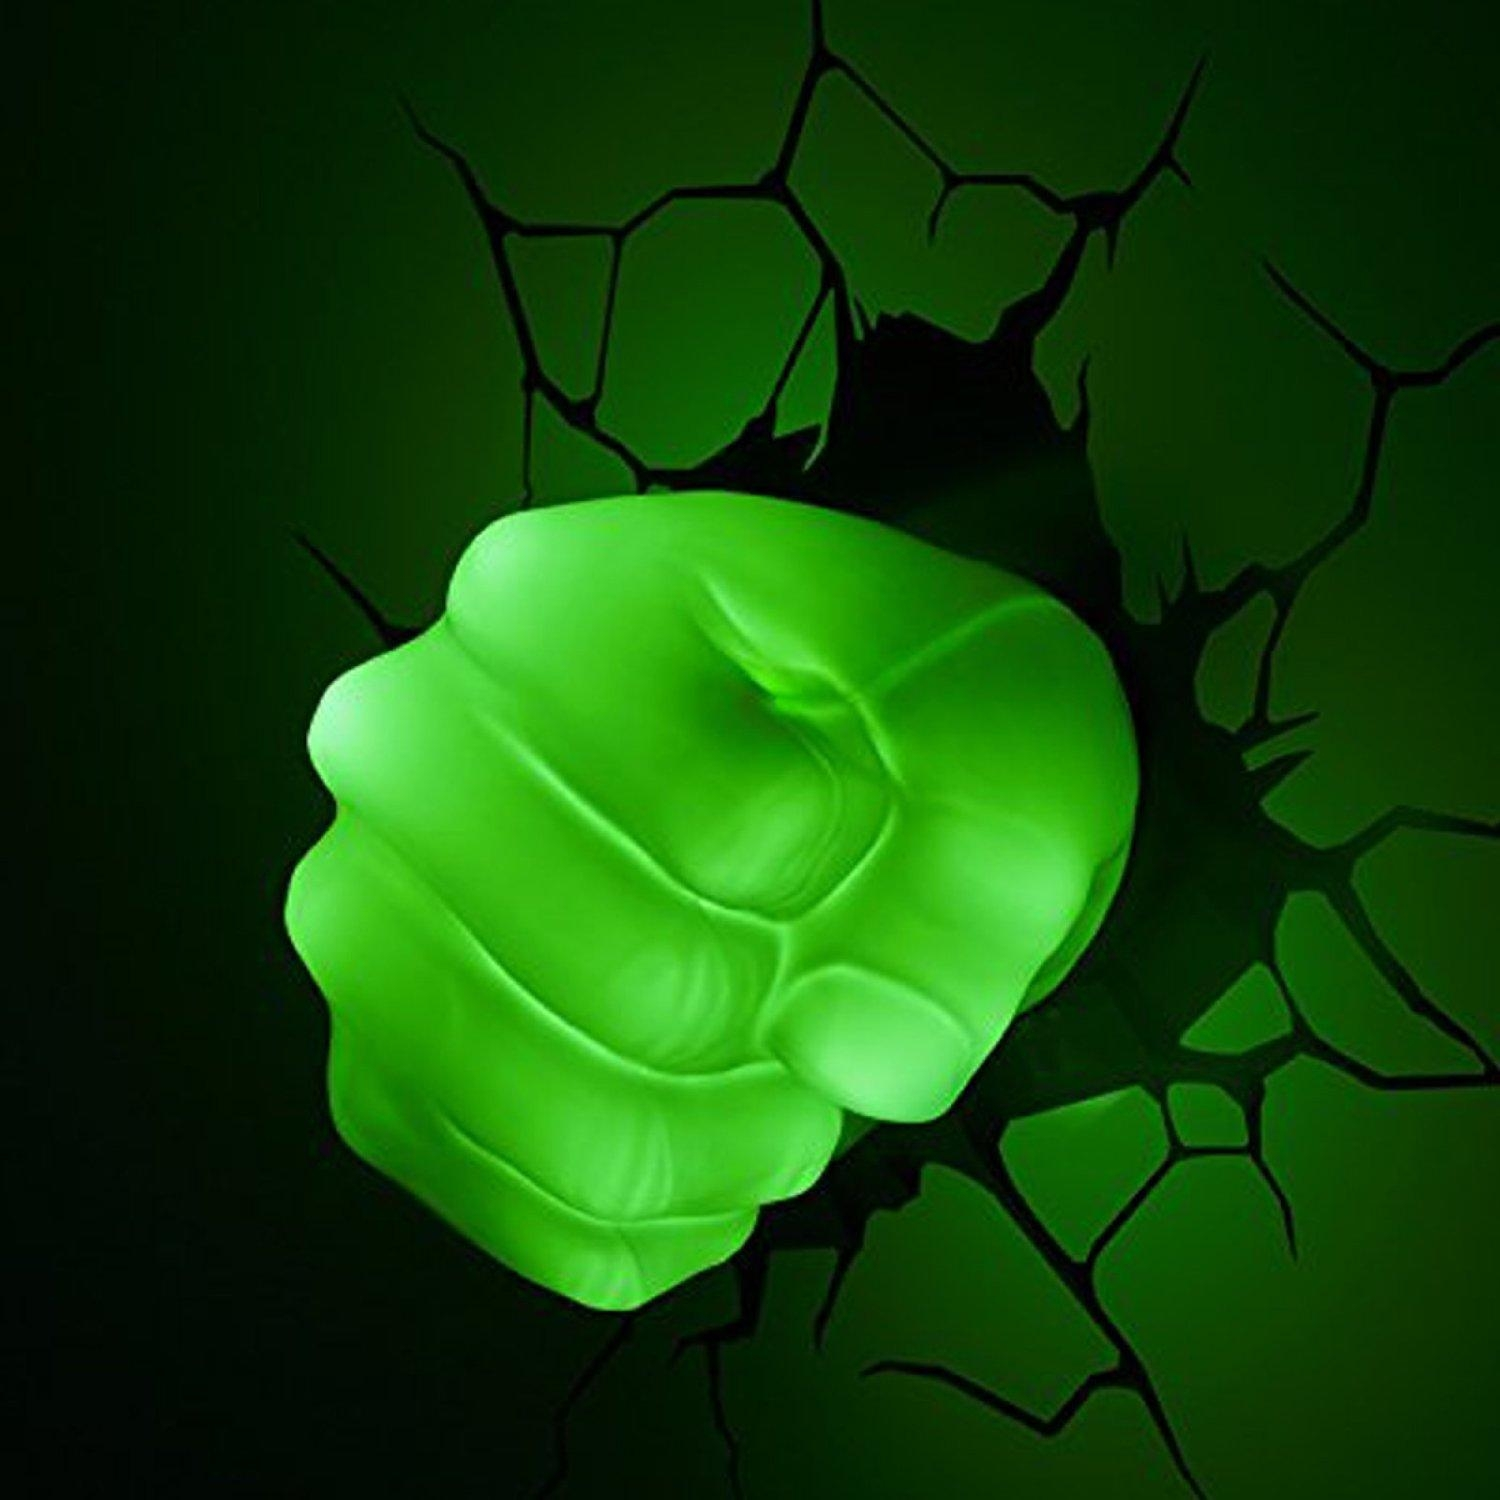 The Avengers 3D Wall Art Nightlight – Hulk Hand | This Stuff Online With The Avengers 3D Wall Art Nightlight (Image 14 of 20)